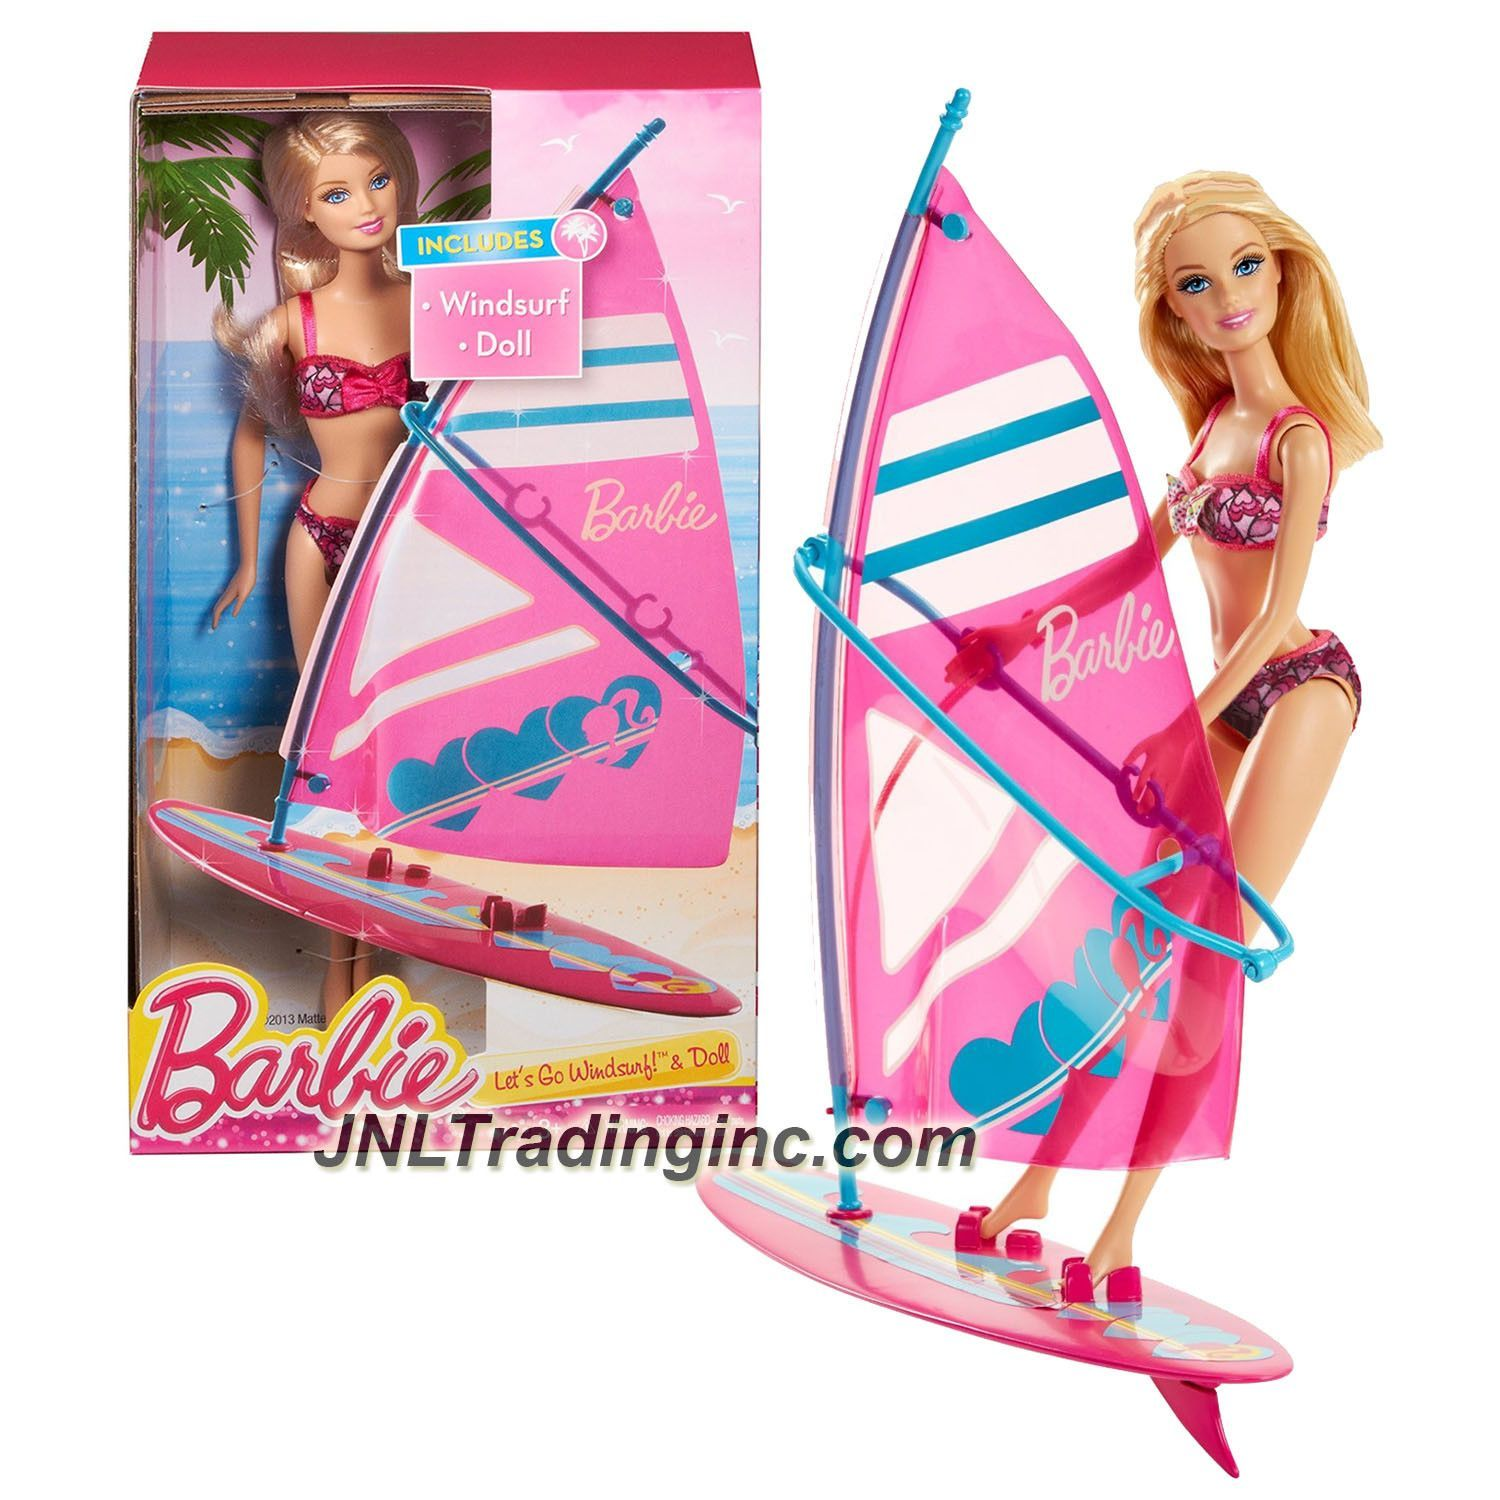 Barbie deluxe furniture stovetop to tabletop kitchen doll target - Mattel Year 2013 Barbie Beach Series 12 Inch Doll Set Let S Go Windsurf Ccv23 With Barbie Doll And Windsurf